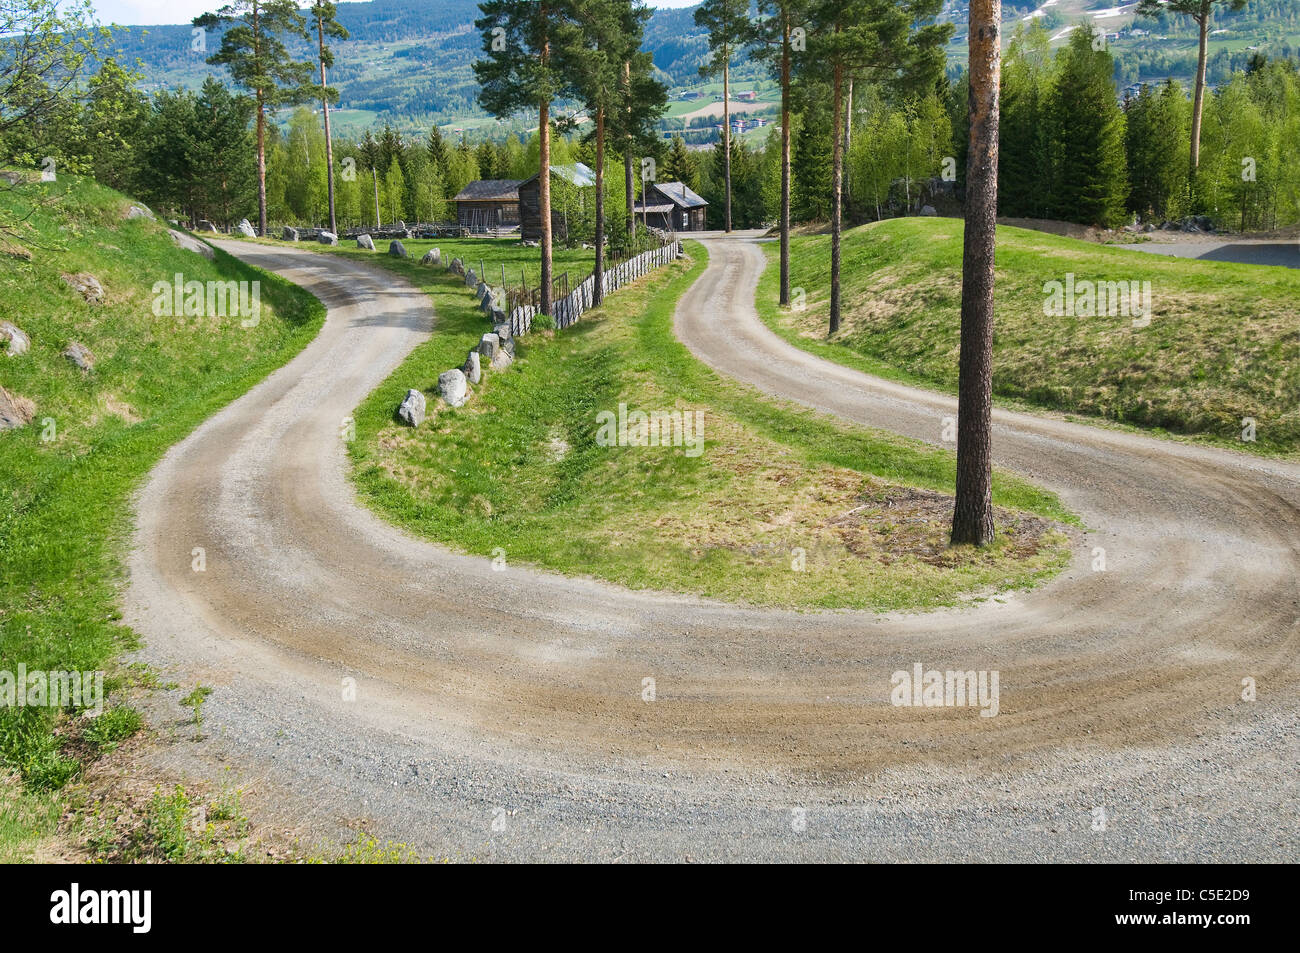 Beautiful view of birch trees along winding country road - Stock Image